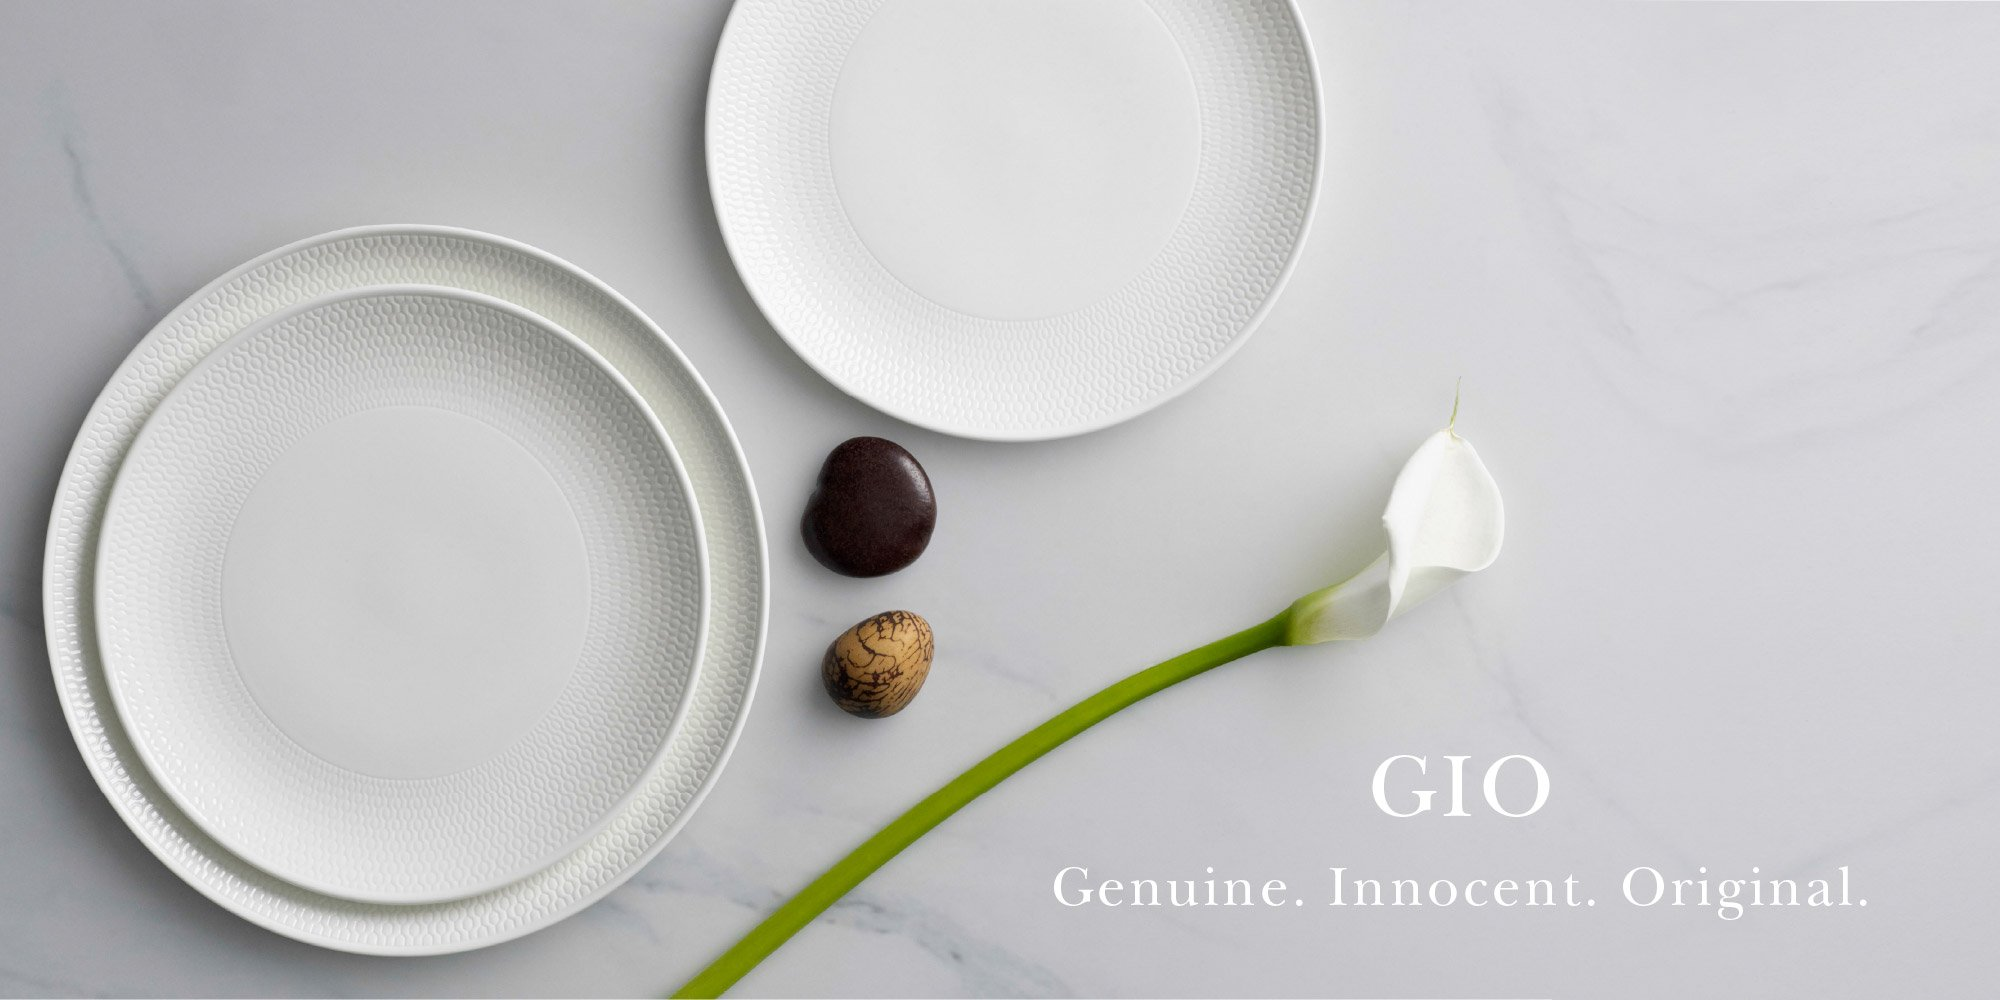 Wedgwood Gio Tableware